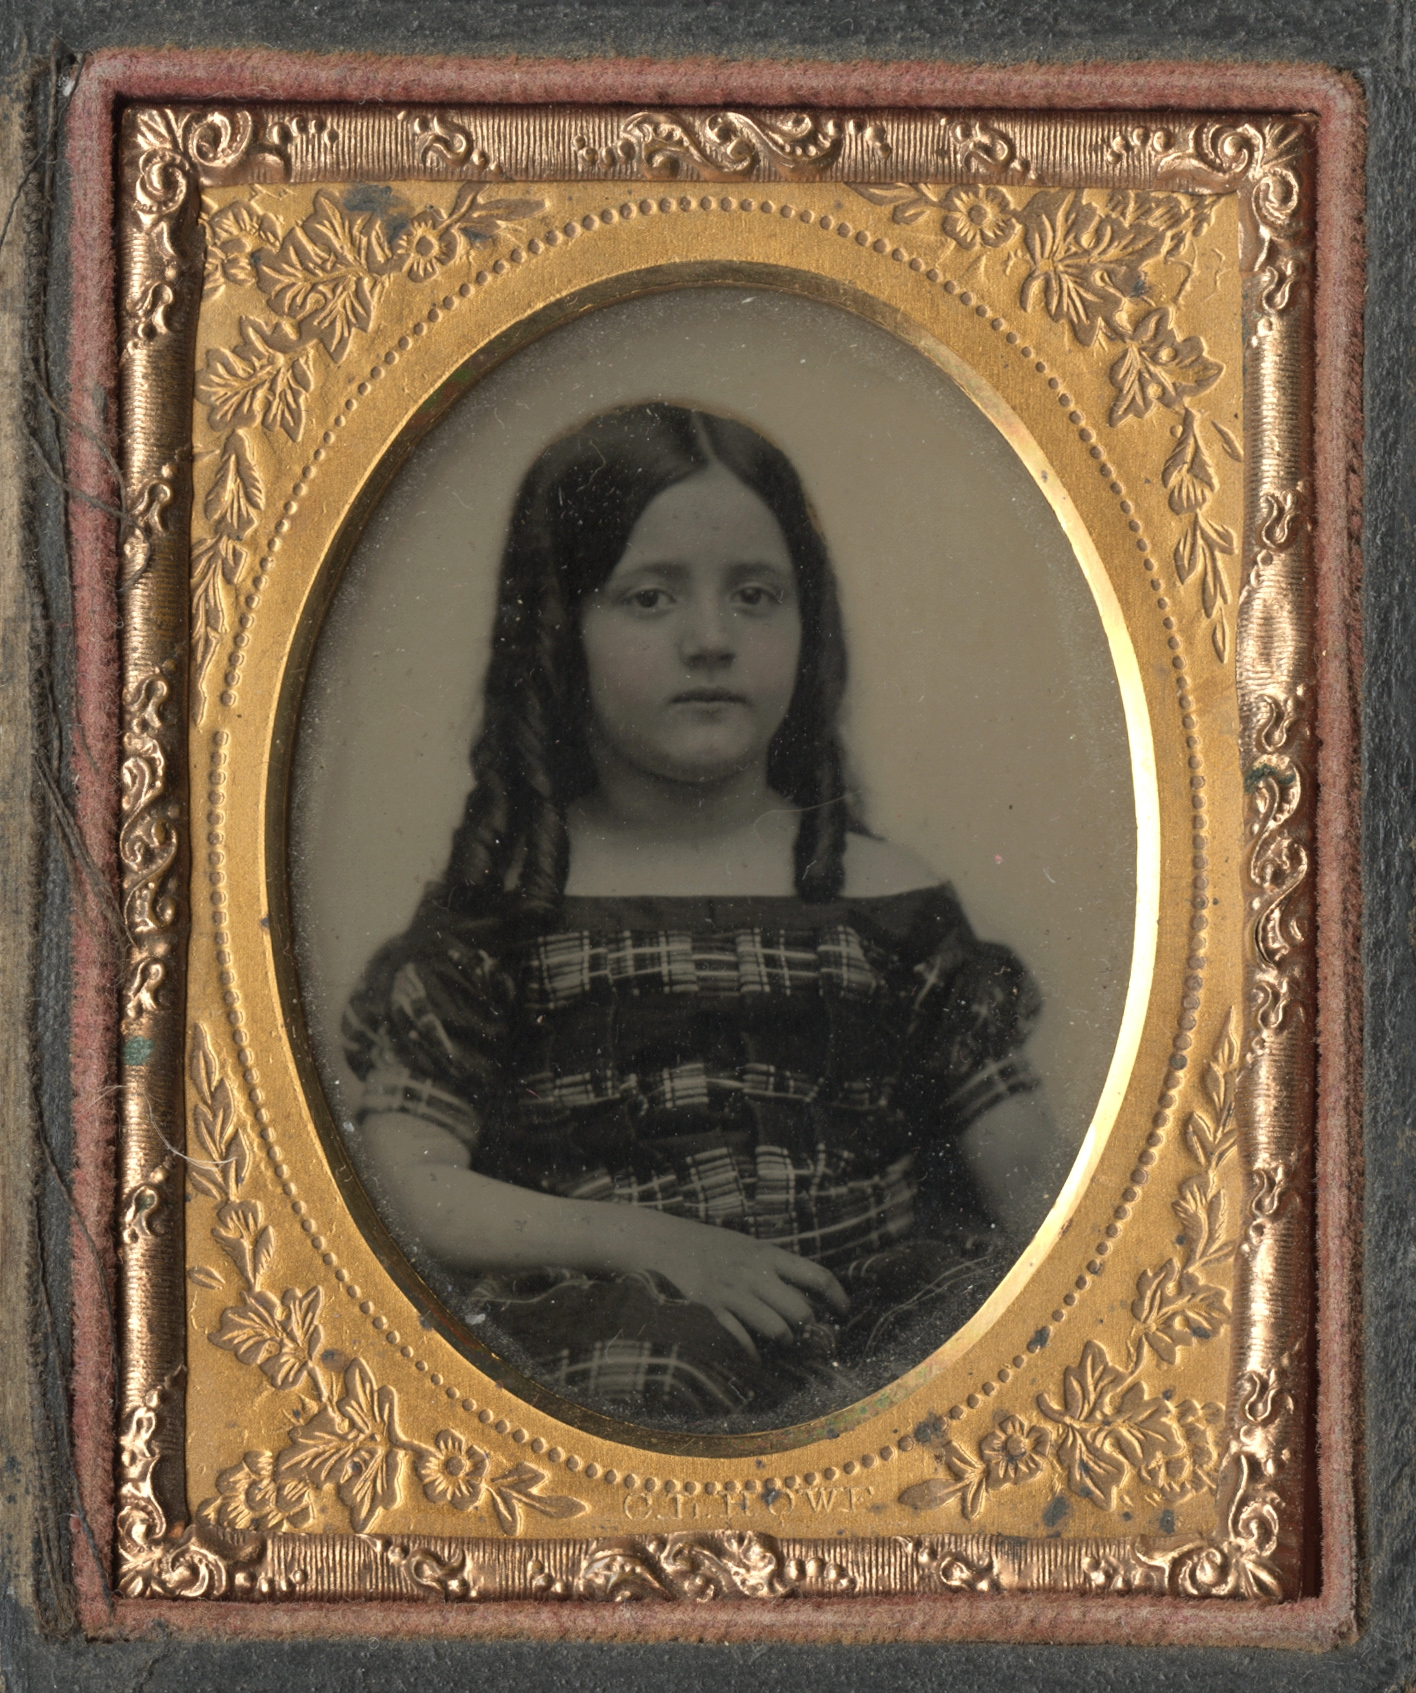 Portrait of a Young Girl with Long  Hair in Ringlets